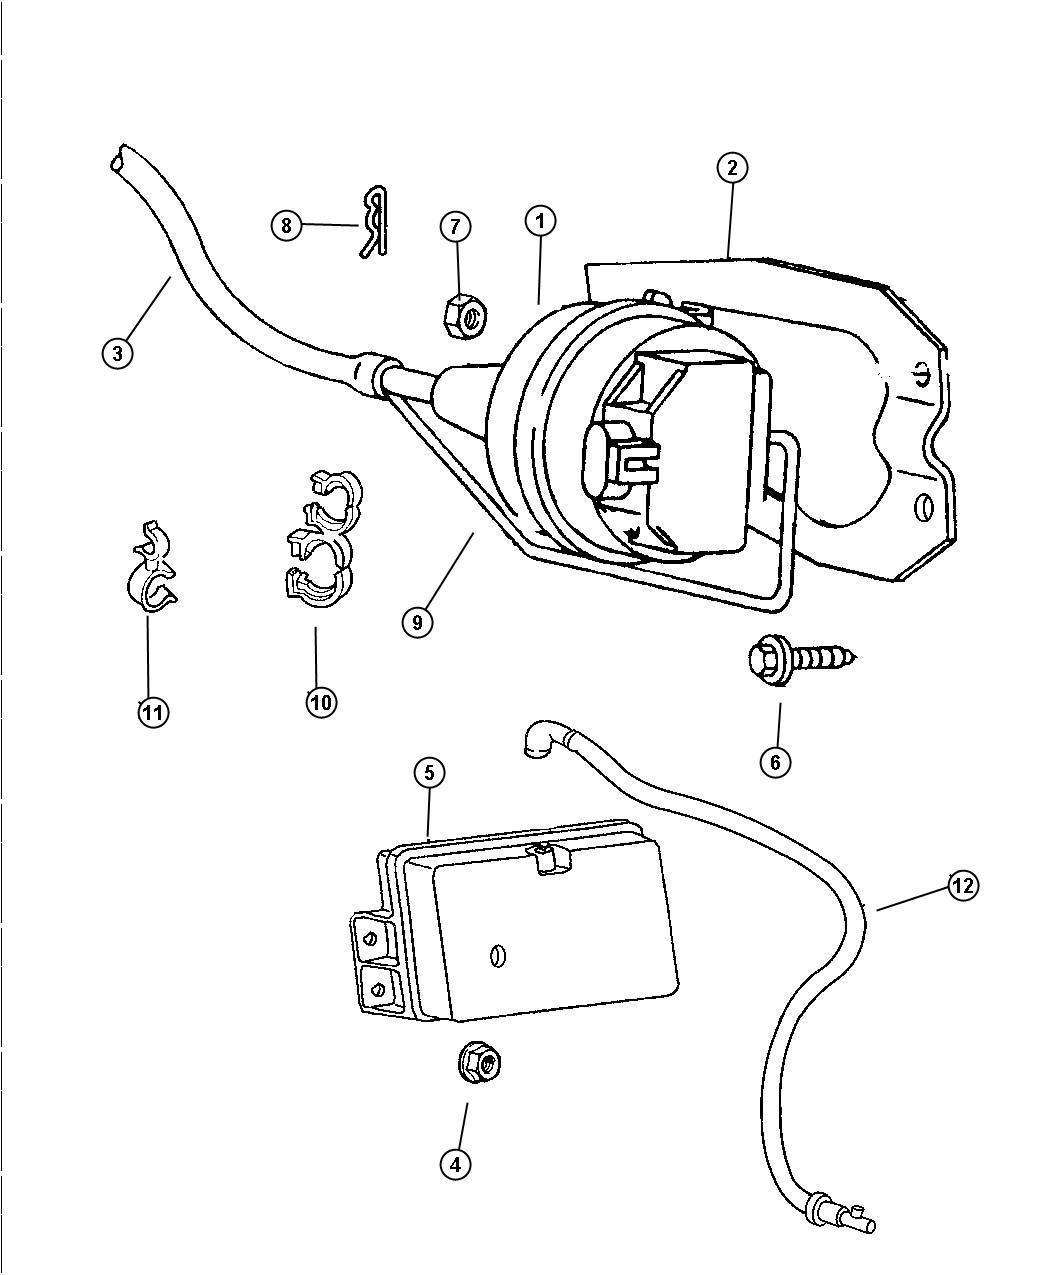 mopar cruise control with Showassembly on Tail Lights Wiring Diagram moreover Parts Driver Resume furthermore 1494057 moreover Mopar Speed Control Switch Speed Control 56049379ac furthermore 2013 Jeep Wrangler Unlimited Wiring Diagram.